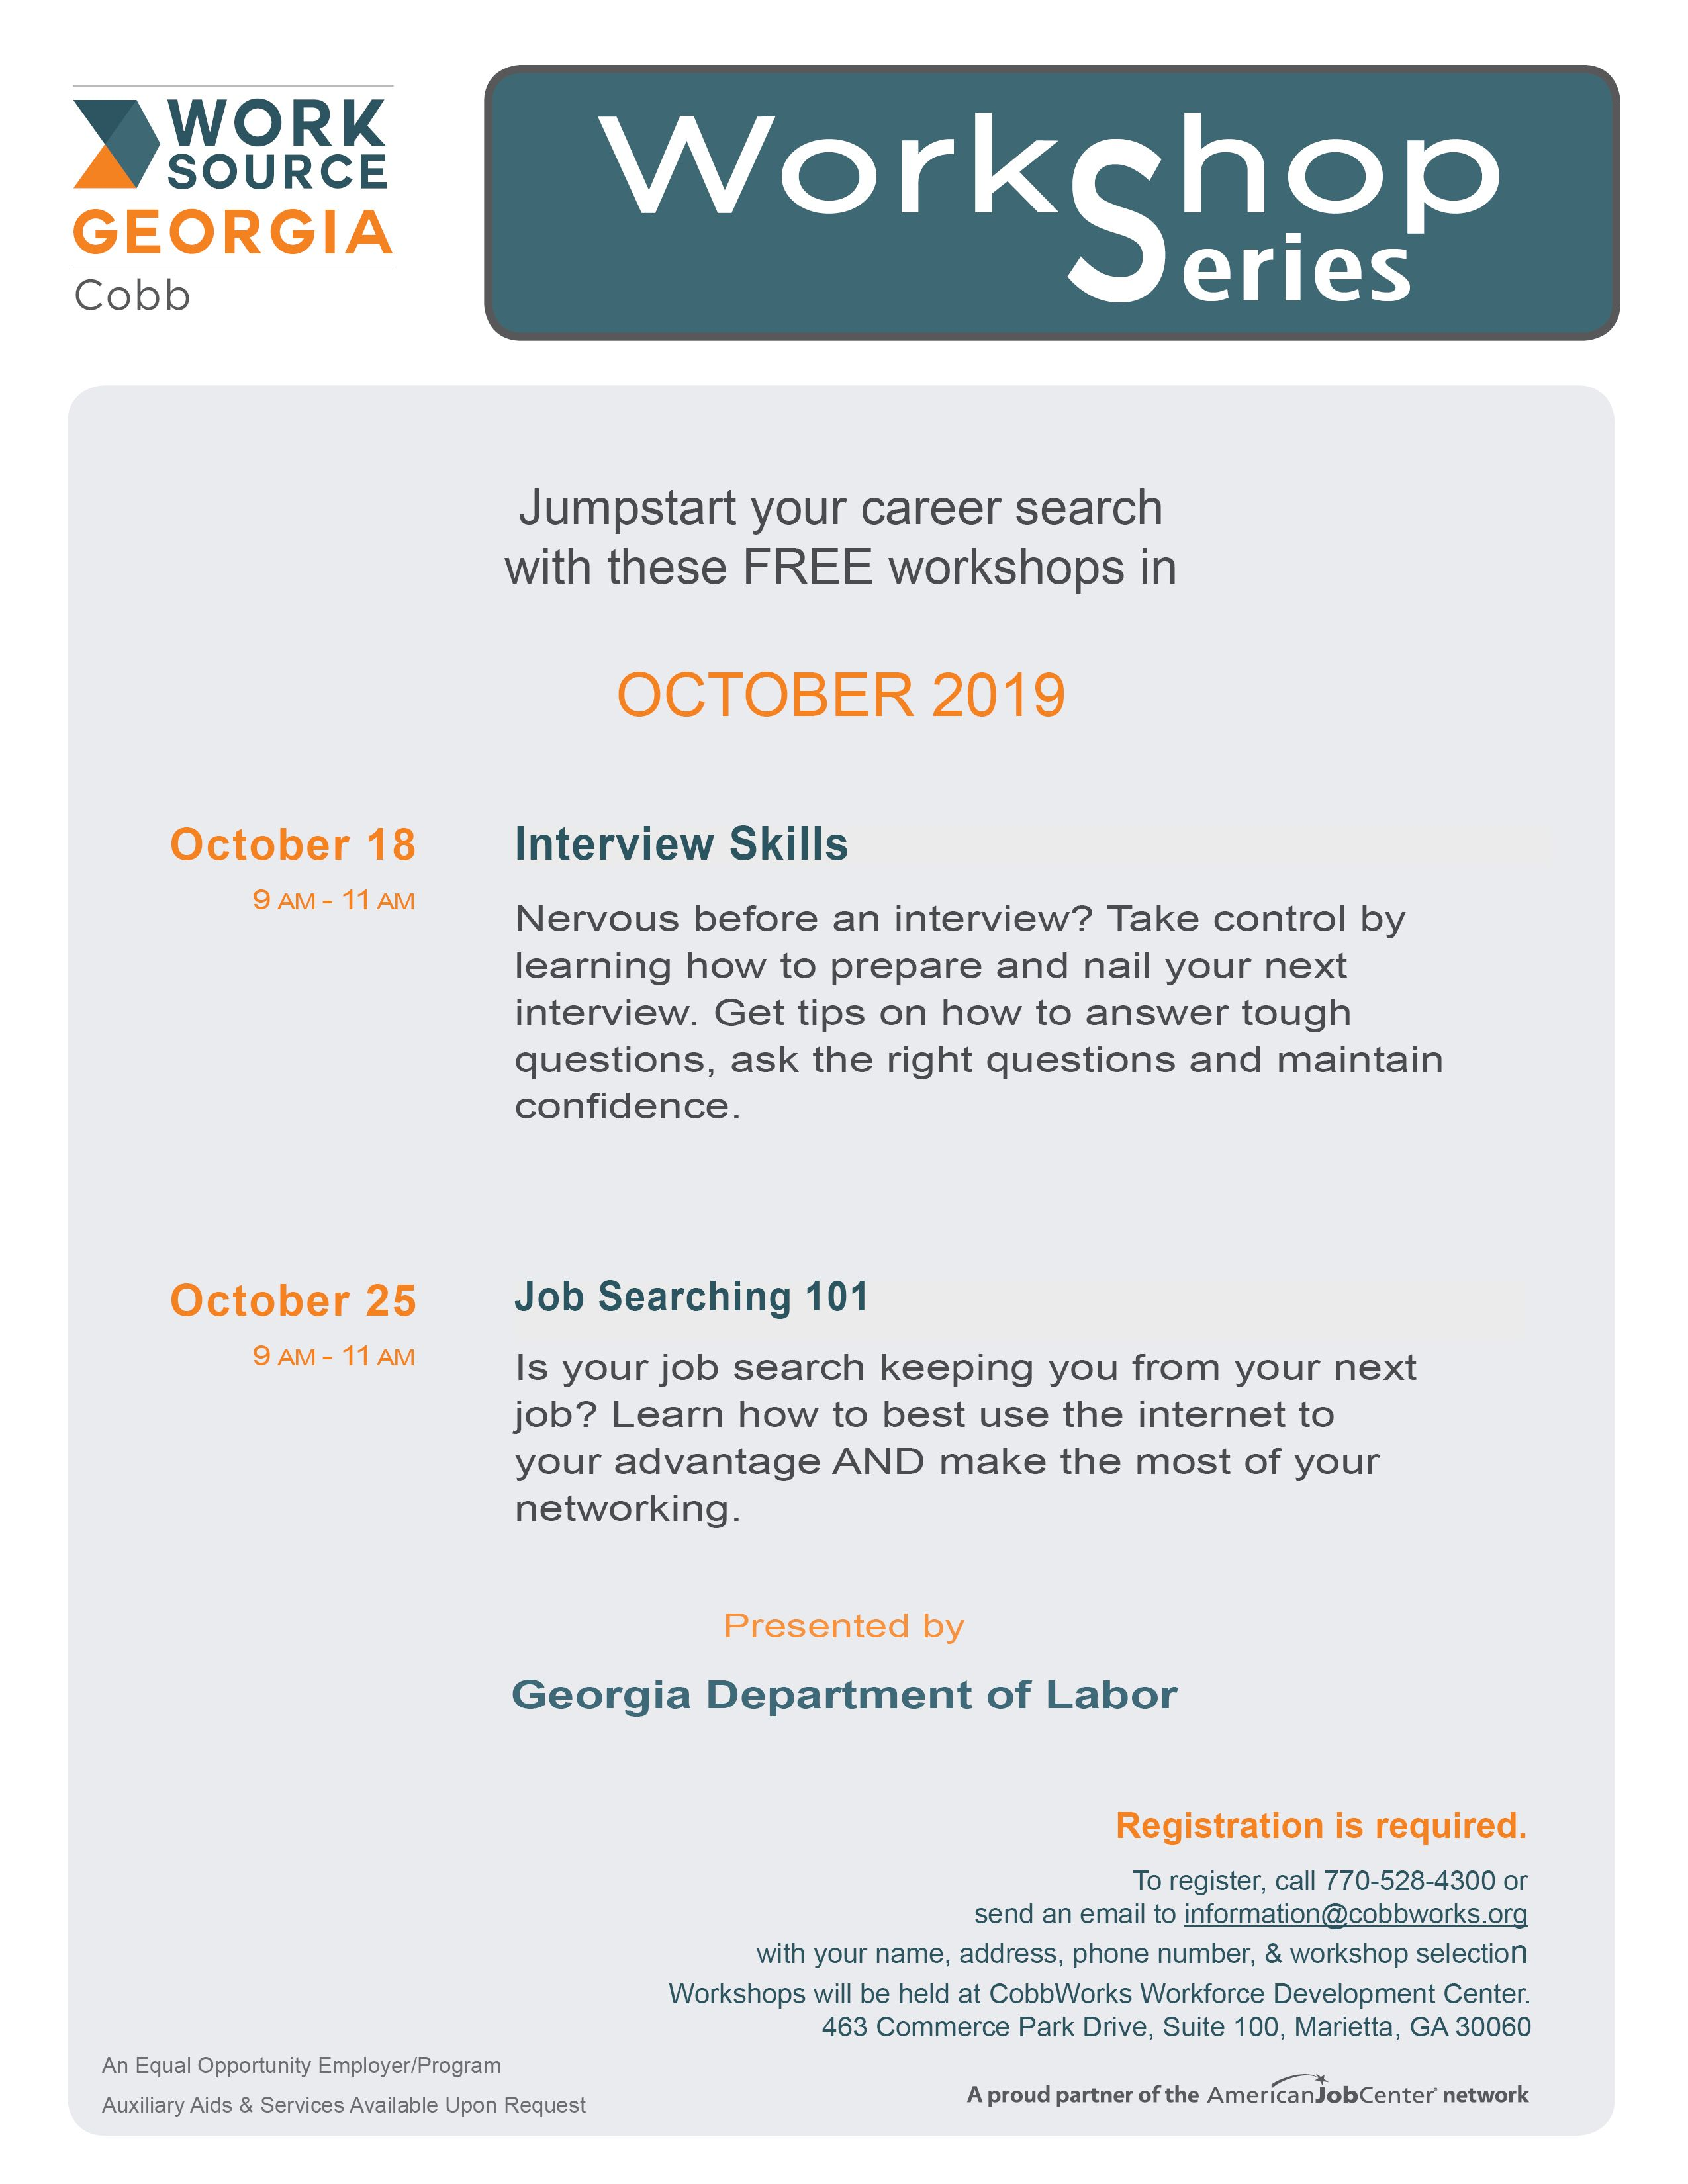 Interview Skills on October 18 and Job Searching on October 25